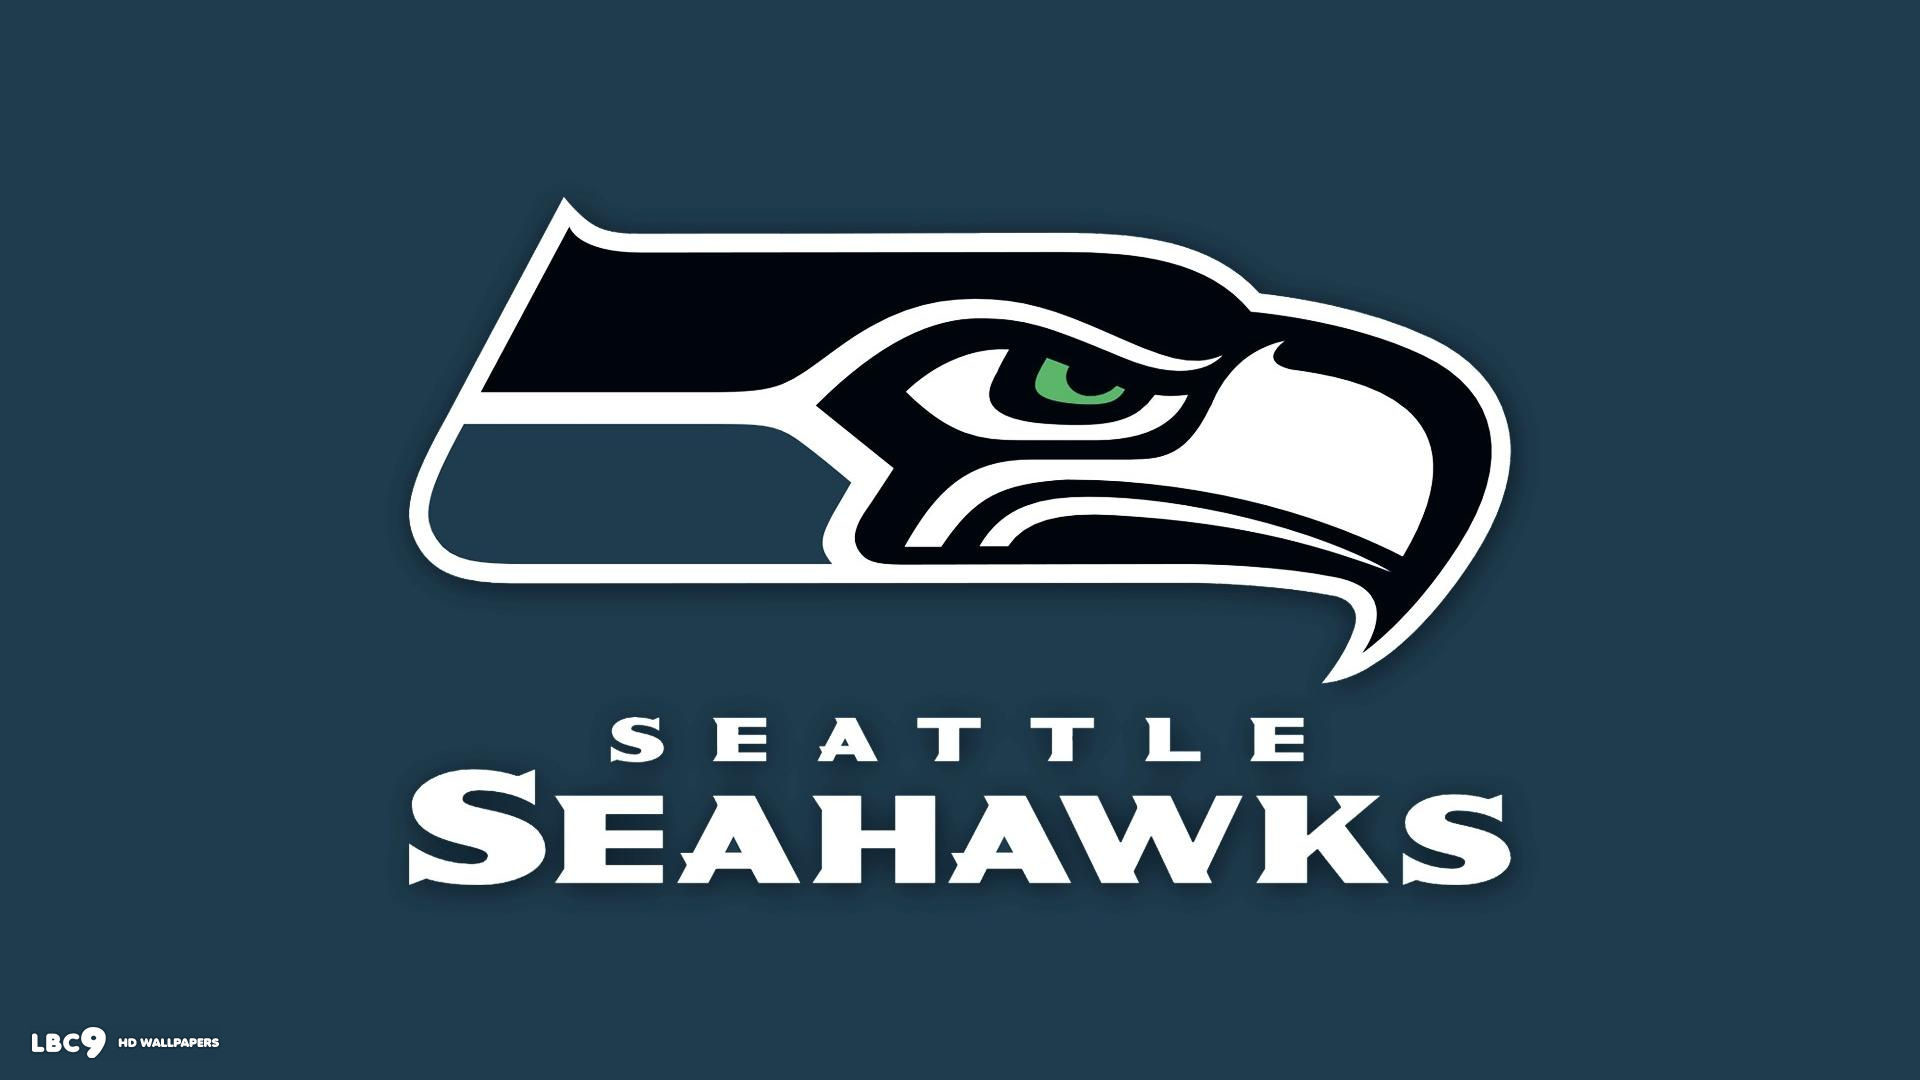 1920x1080 seattle seahawks wallpapers and nfl teams hd backgrounds